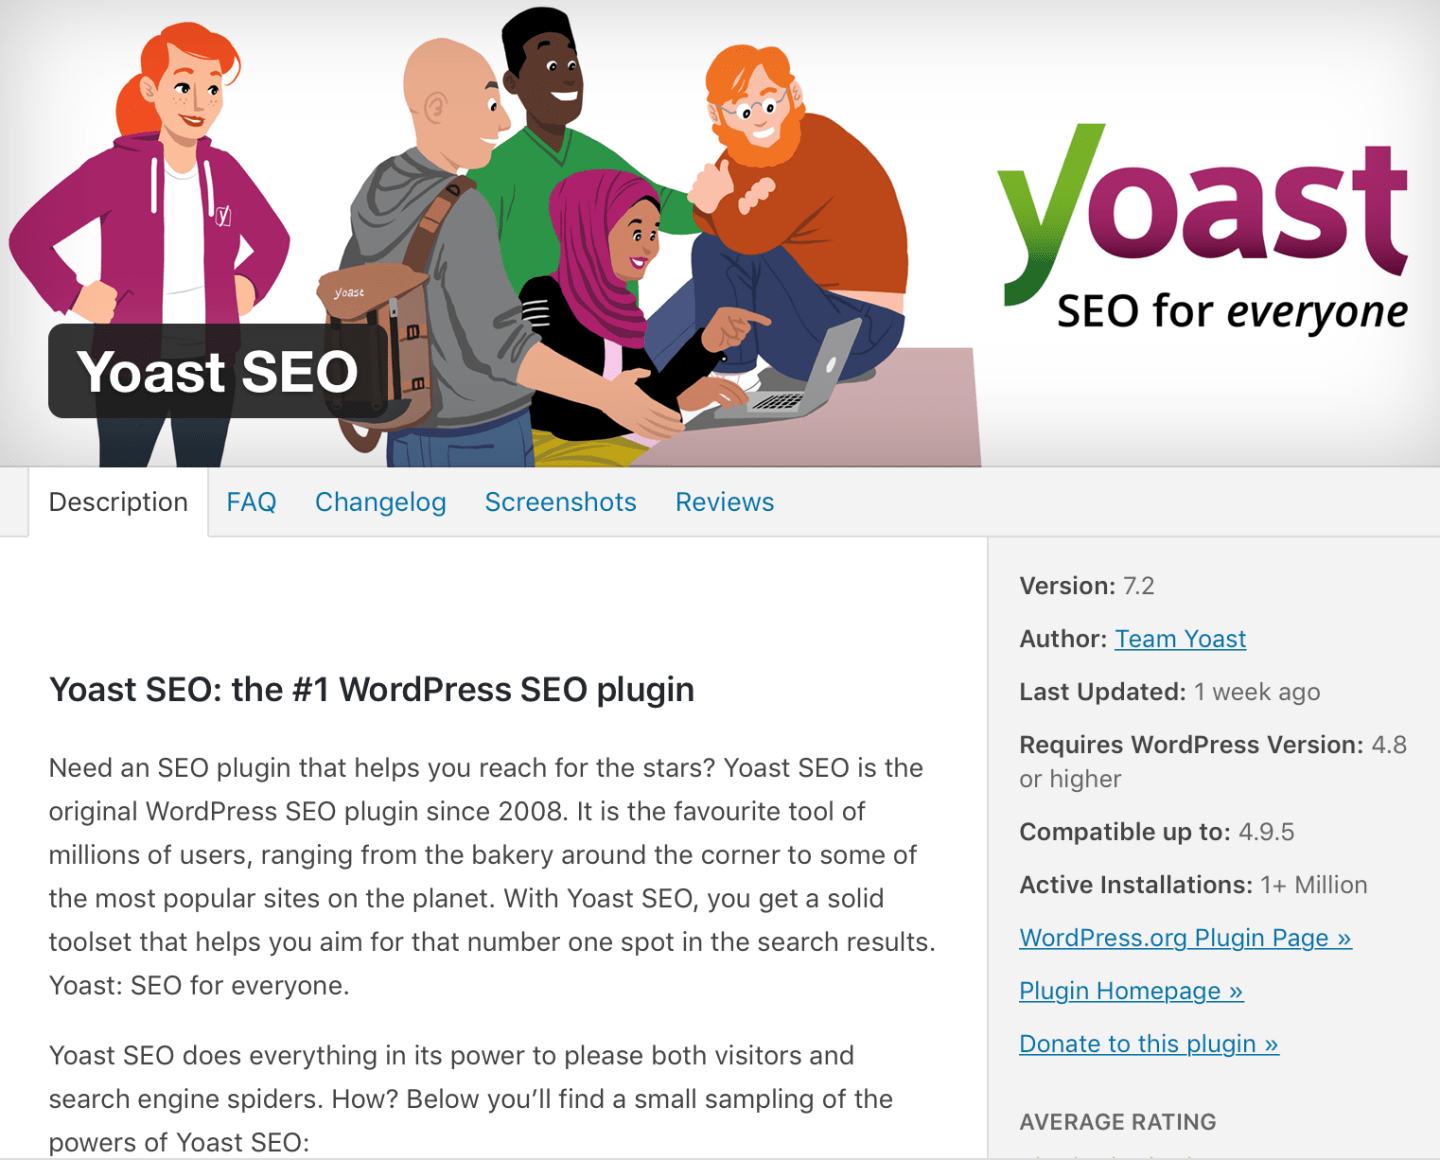 The Bloggers Guide To SEO - As Told By Yoast, Explained By An Idiot